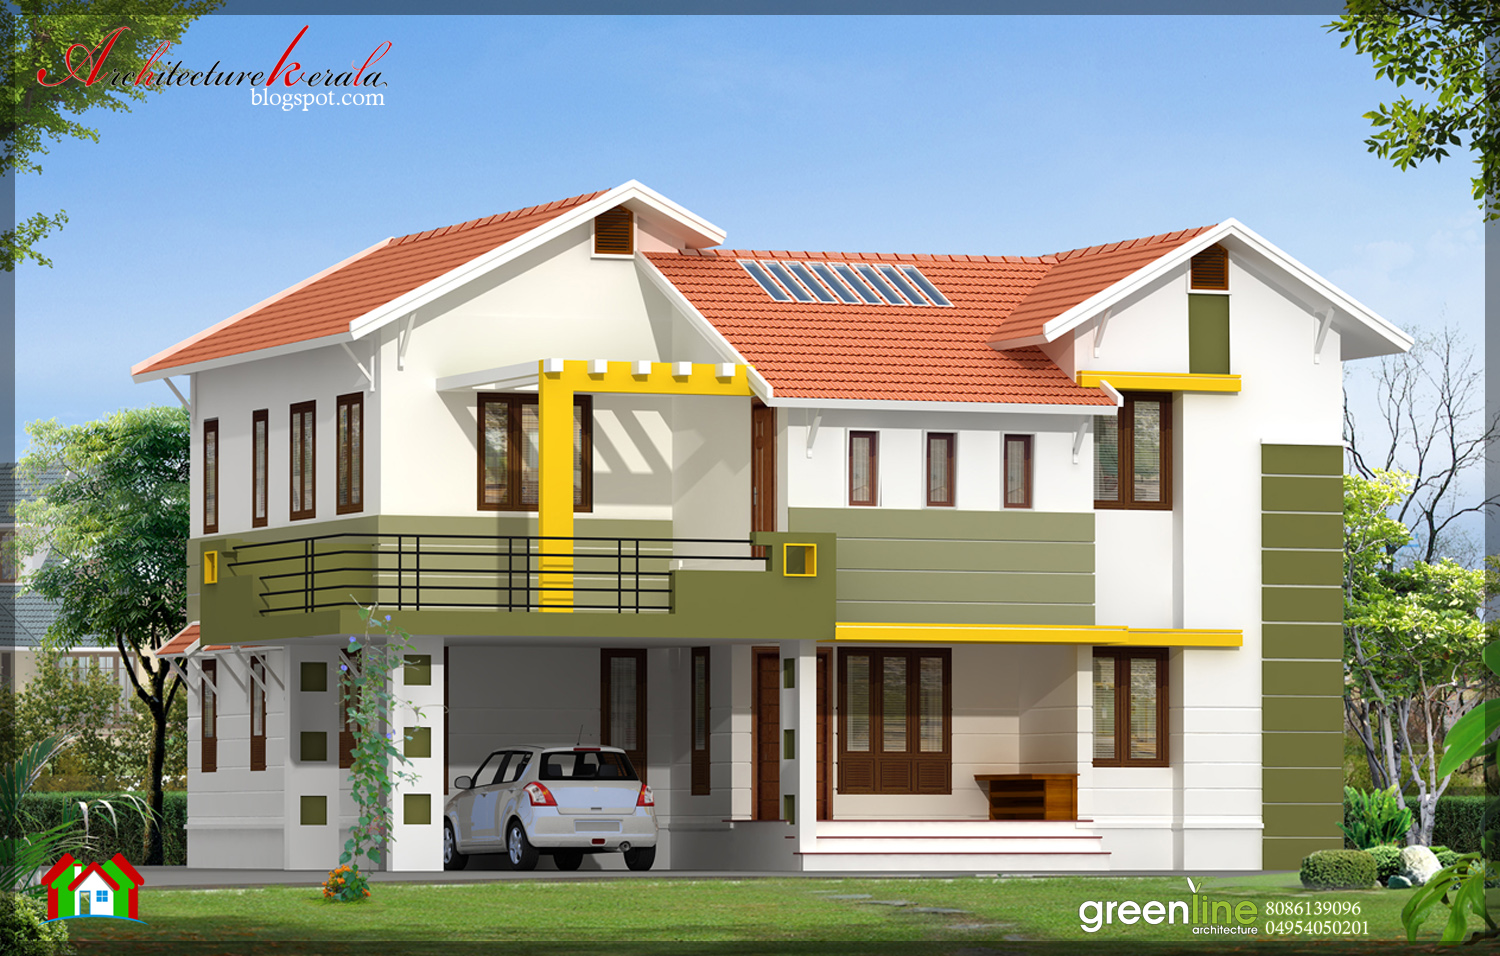 Architecture Kerala 4 Bhk Contemporary Style Indian Home